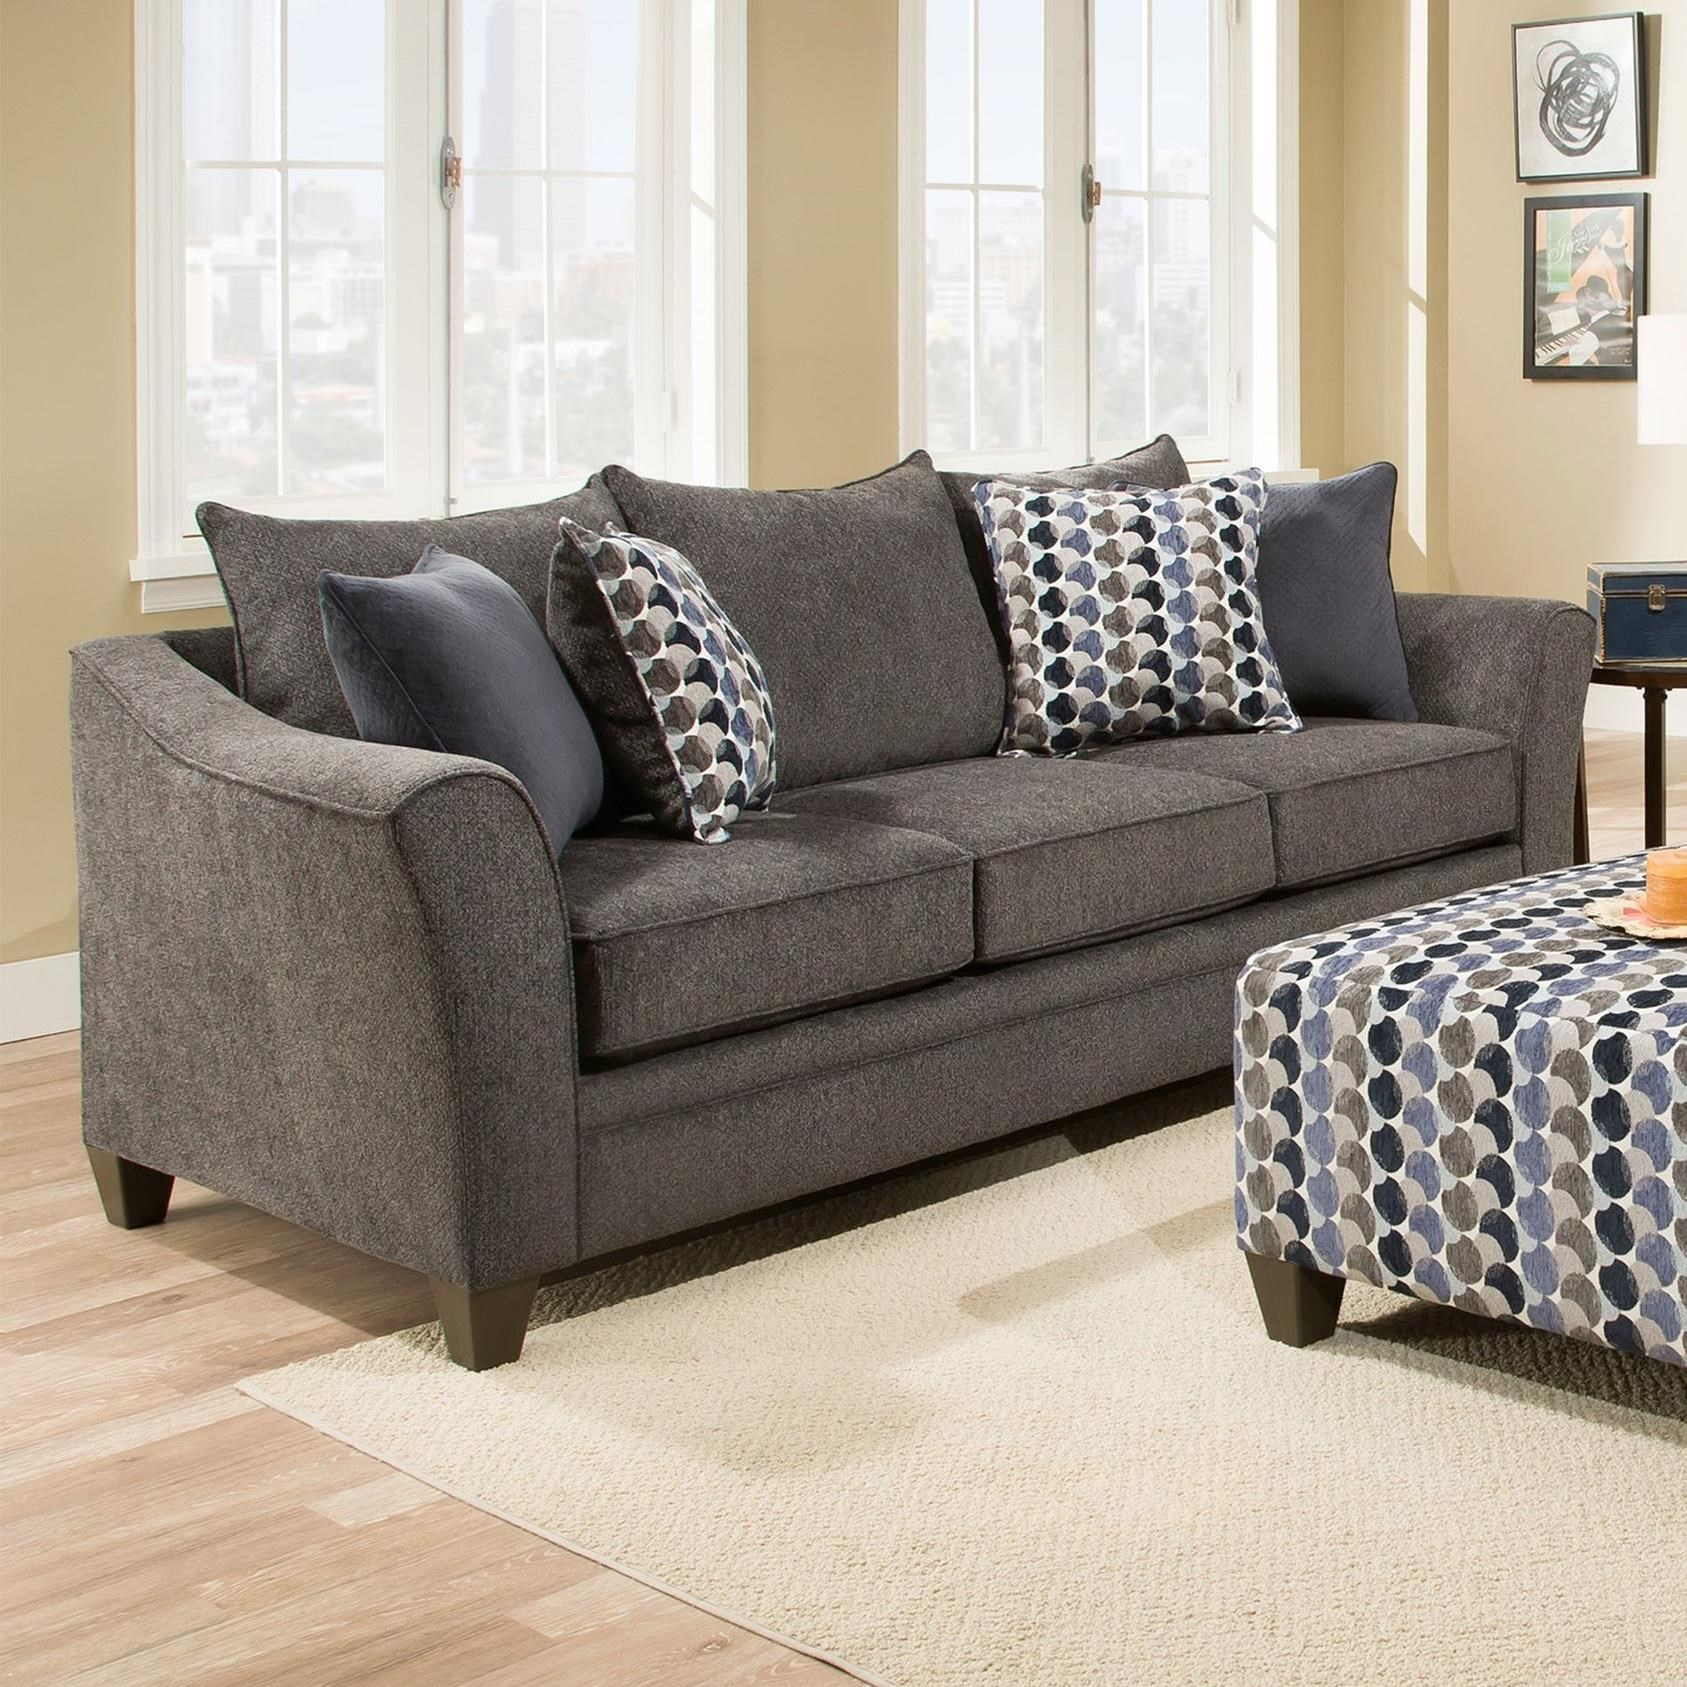 Umber Kiara 6485Sofa Transitional Sofa With Flared Arms | Efo Within Kiara Sofa Chairs (View 8 of 25)